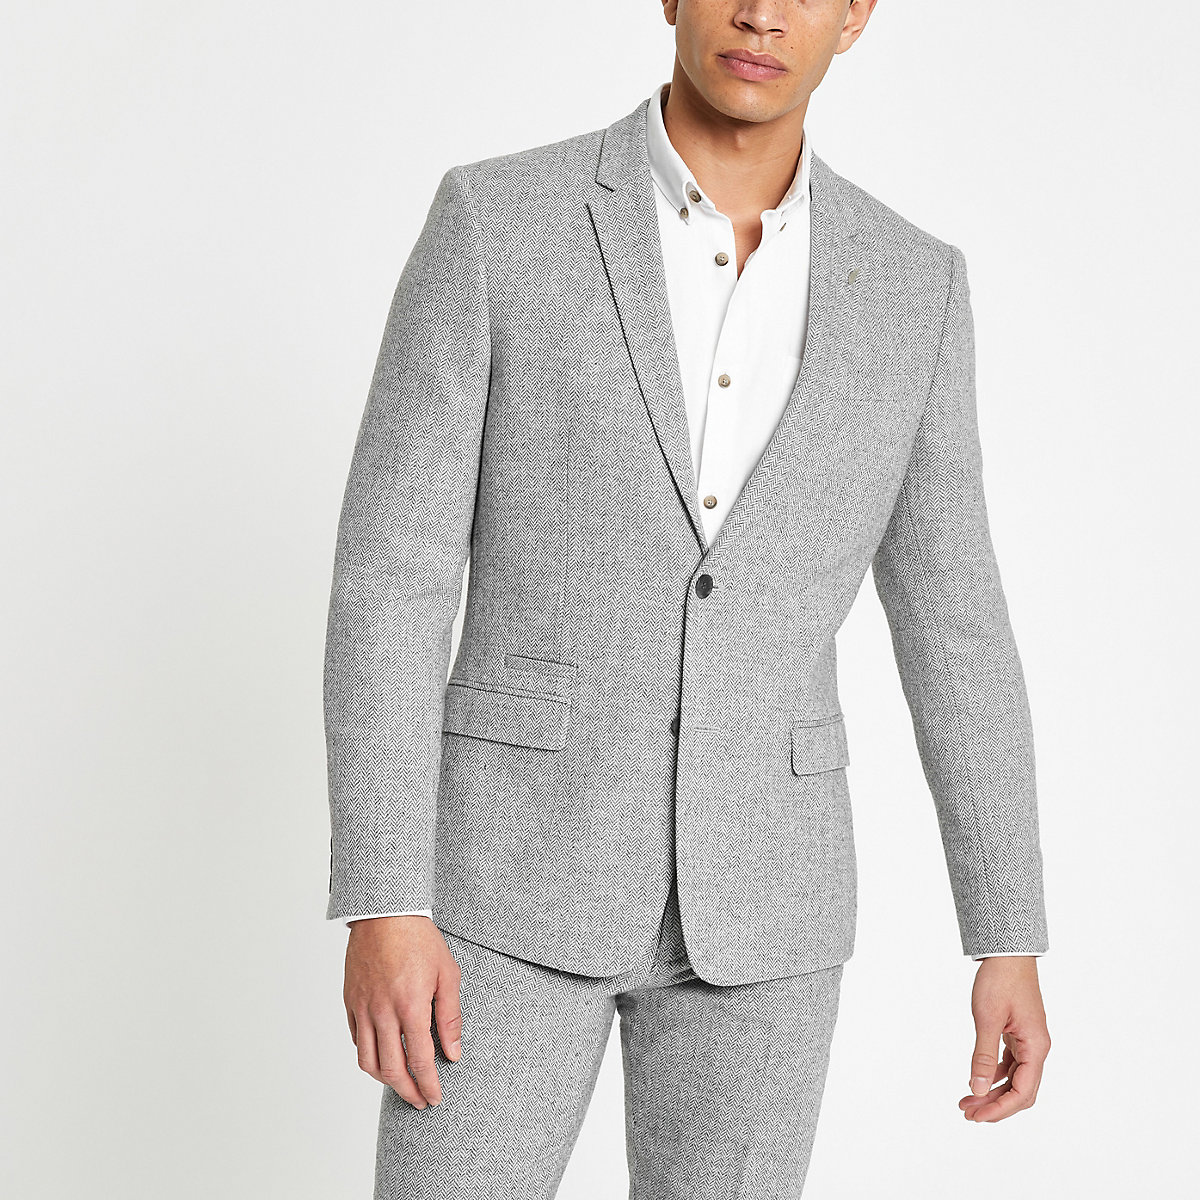 Grey herringbone skinny suit jacket